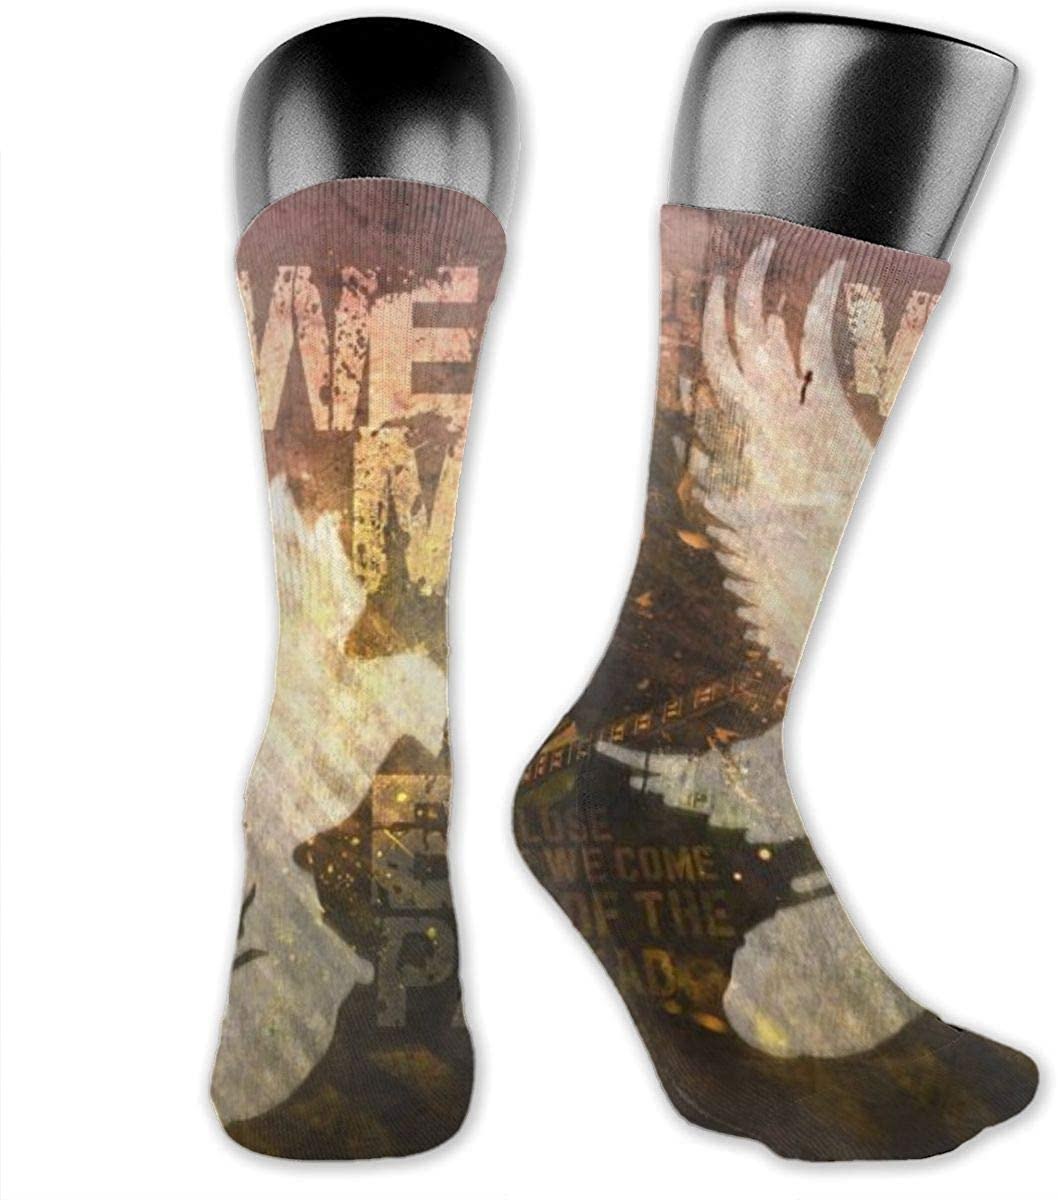 Unisex Casual Sock Hollywood Undead Dove And Grenade Novelty Crew Socks Knee High Compression Stockings Athletic Socks Personalized Gift Socks Men Women Teens Girls